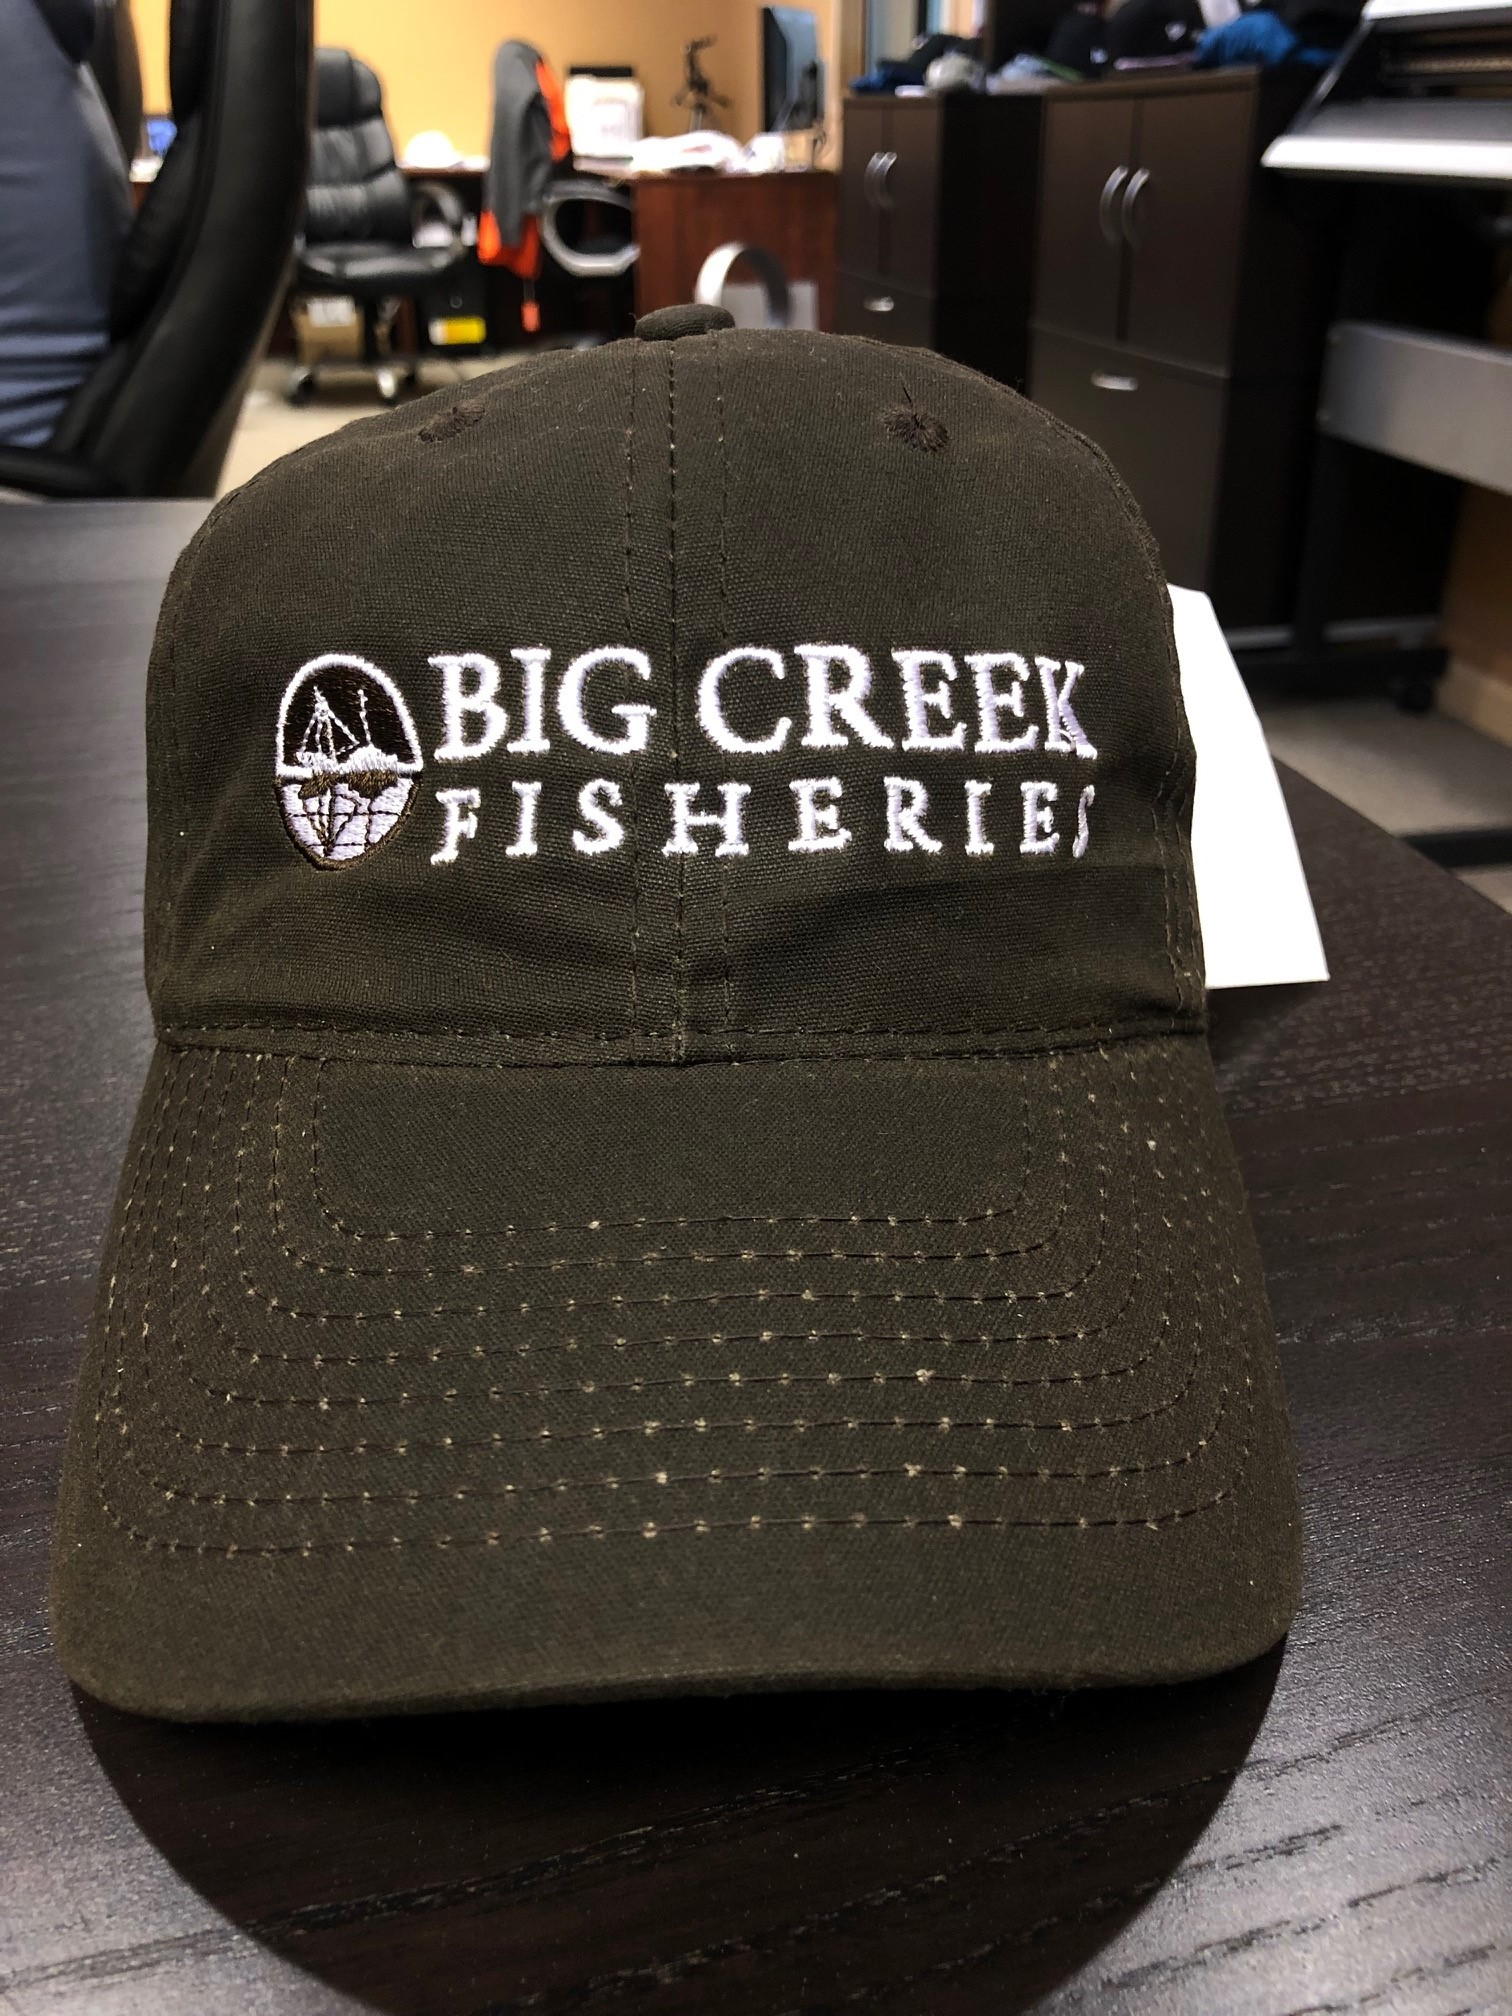 logounltd_laser_etching_embroidery_screen_printing_apparel_uniform_custom_tshirts_kirkland_bellevue_seattle_redmond_woodinville_branded_merchandise_promotional_products_logo_unltd_hats_big_creek_deep_sea_fisheries (1).jpg